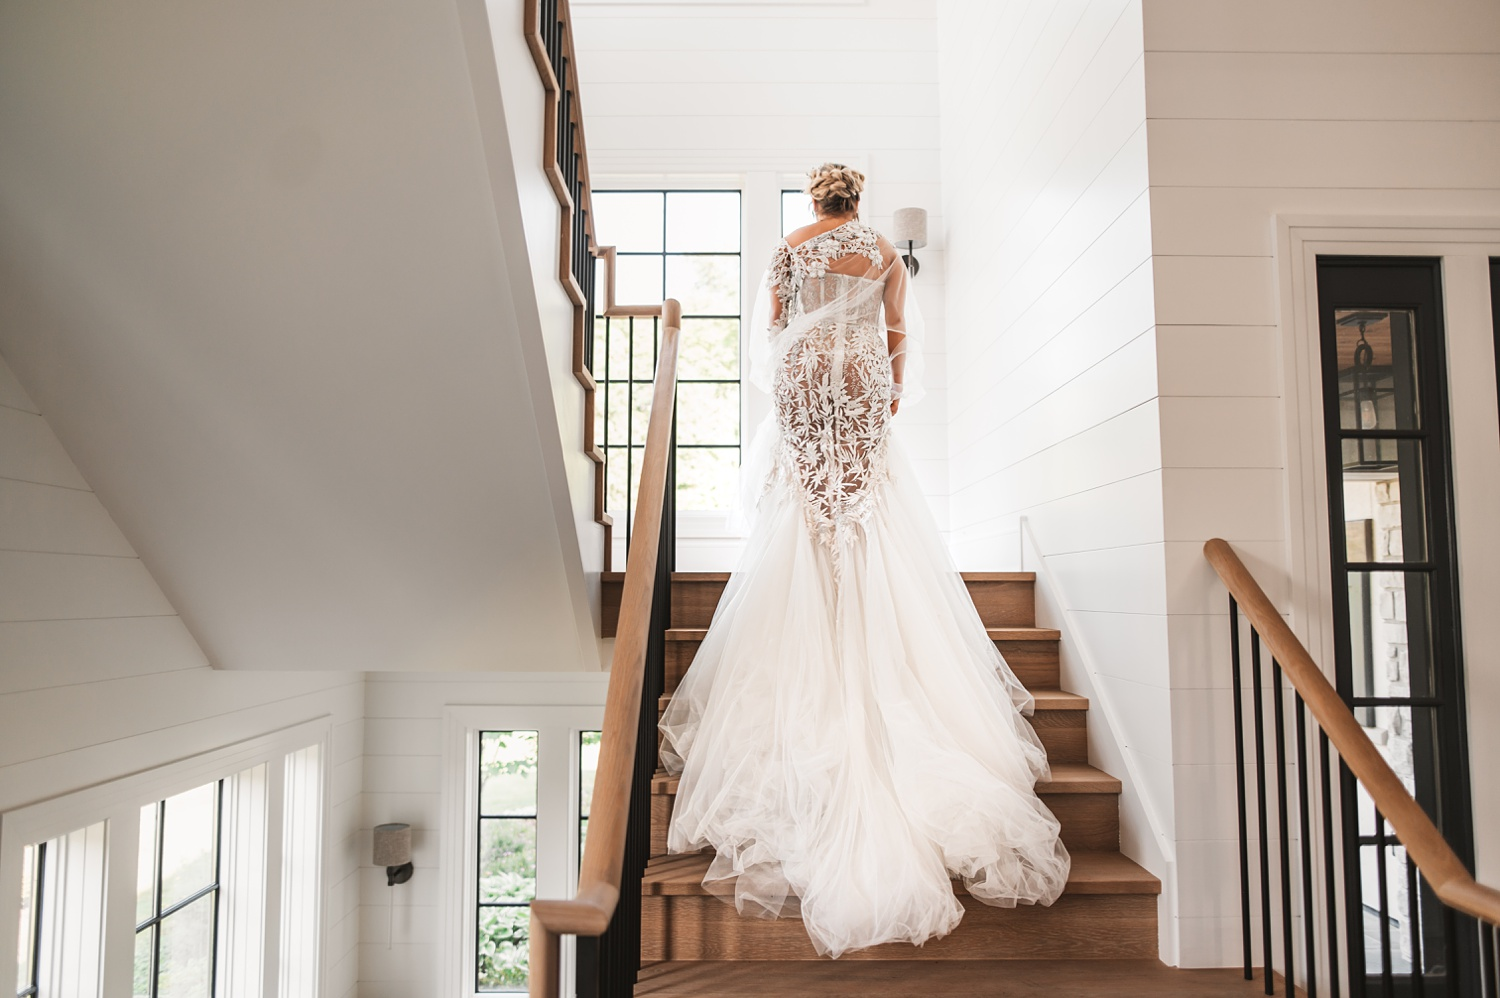 Lake Geneva Micro Wedding - The Adamkovi bride walking up the stairs in a mansion